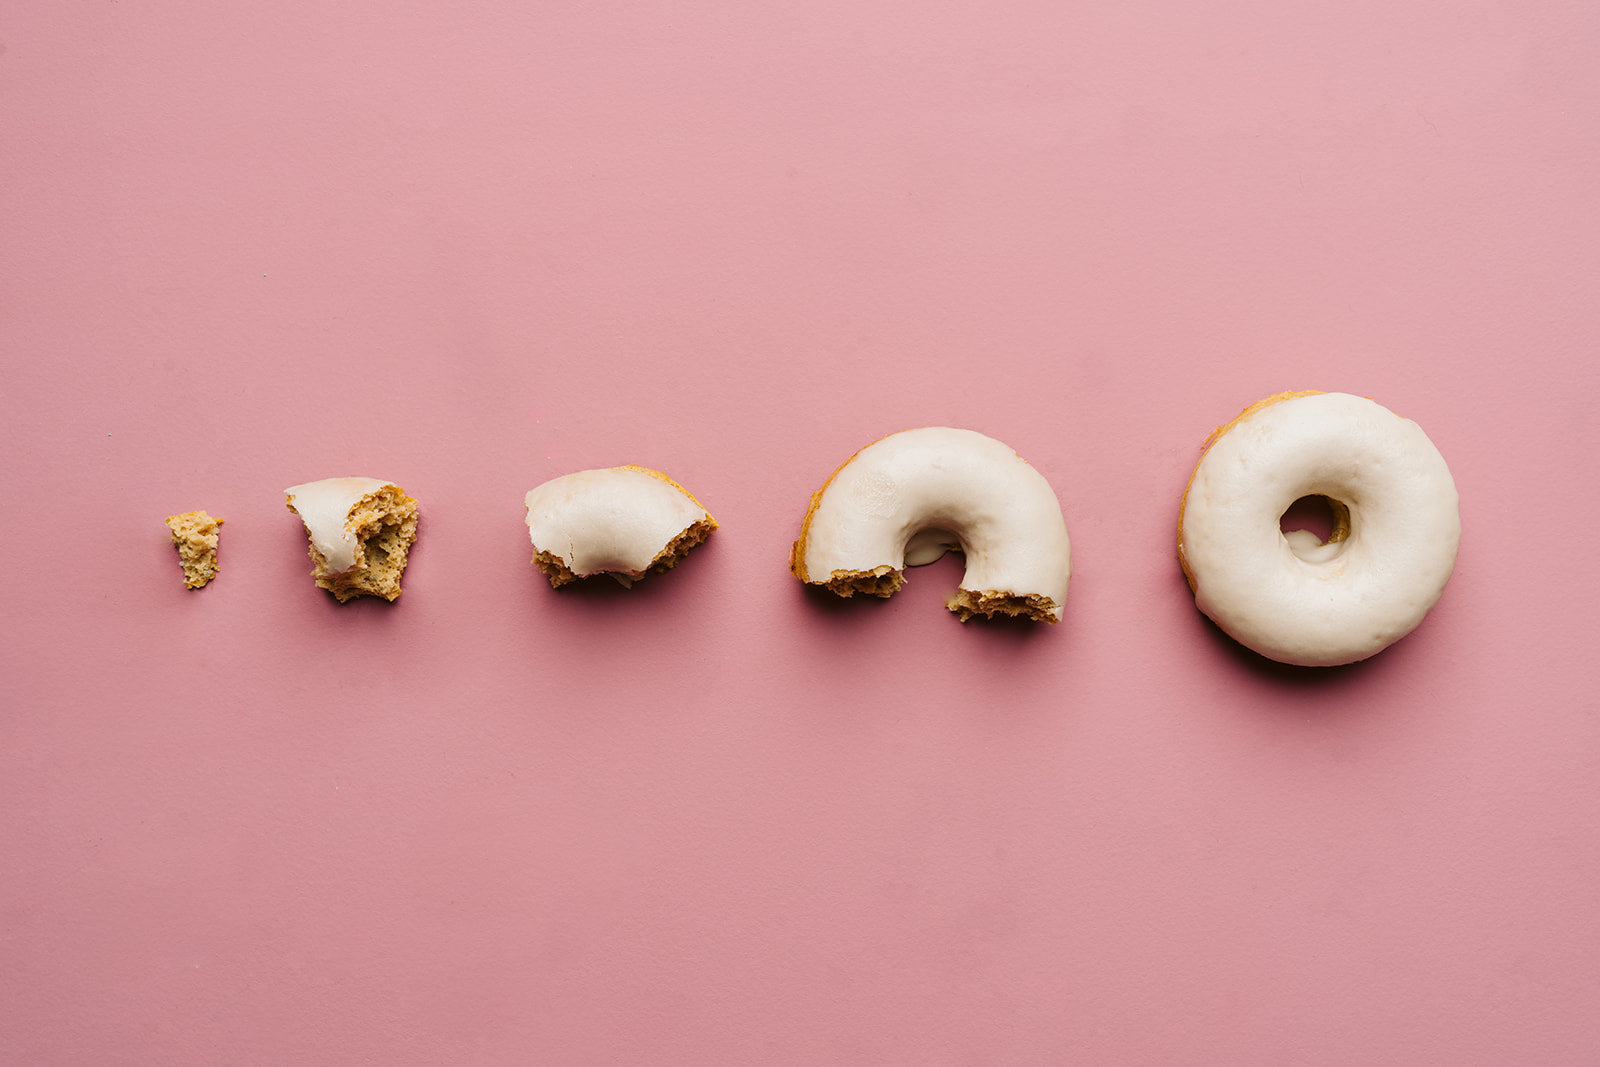 Evolution of Original Maple Glazed gluten free protein donut from Holly's Healthy Holes in Omaha, Nebraska with pink background photography by Pixel Bakery Design Studio in Lincoln, Nebraska from photographer Yoni Gill